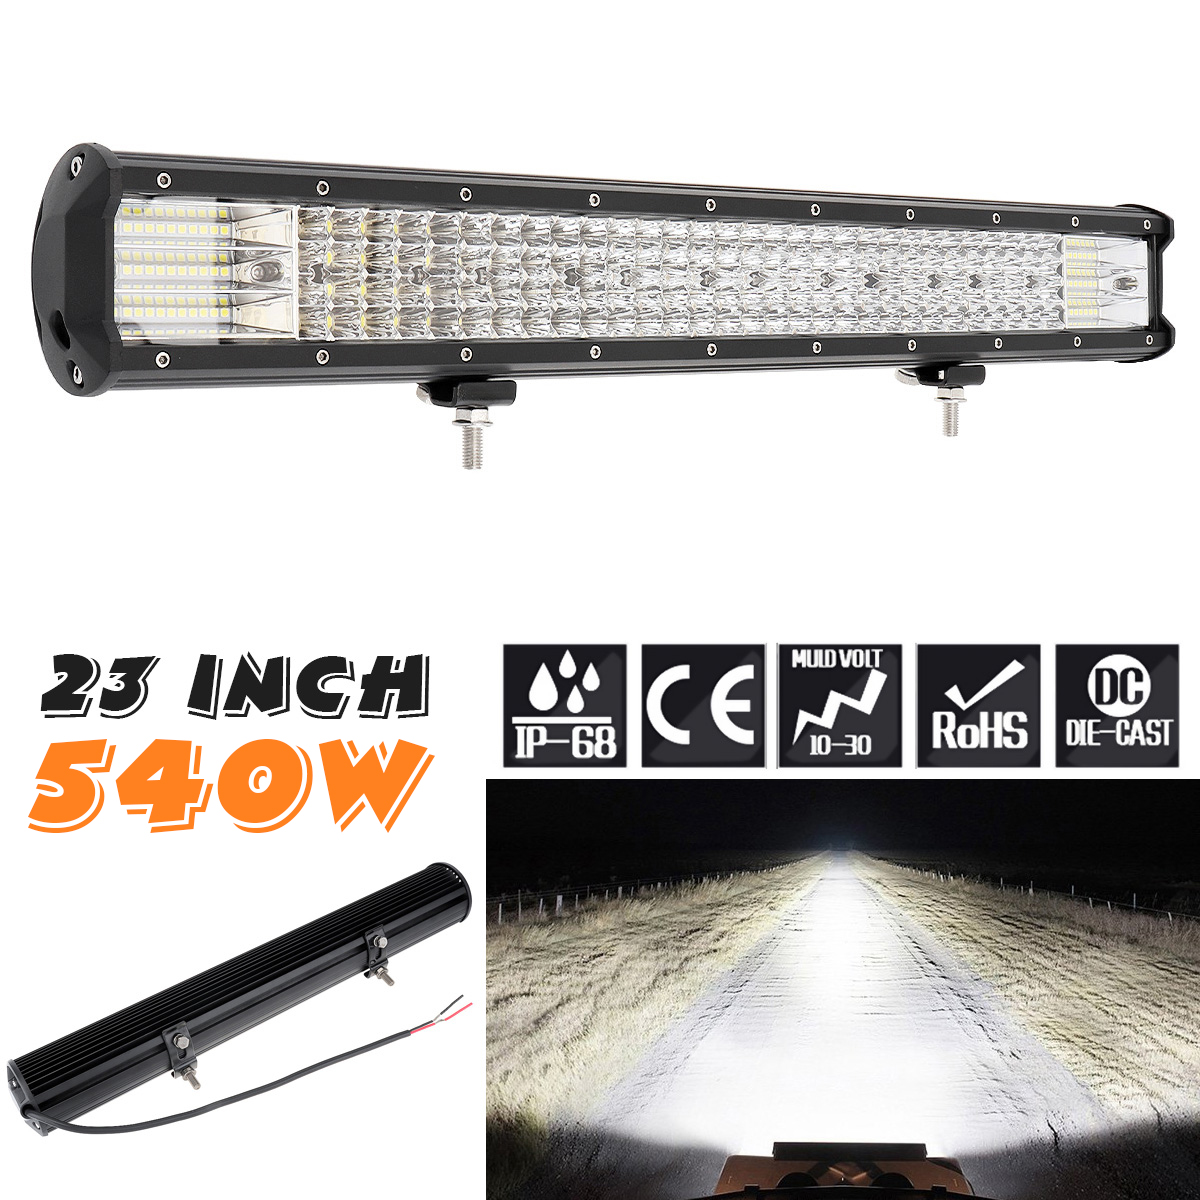 540W 180Pcs LED Strip LED Light Bar Work Light Combo Beam for Driving Offroad Boat Car Tractor Truck 4x4 SUV-in Car Headlight Bulbs(LED) from Automobiles & Motorcycles